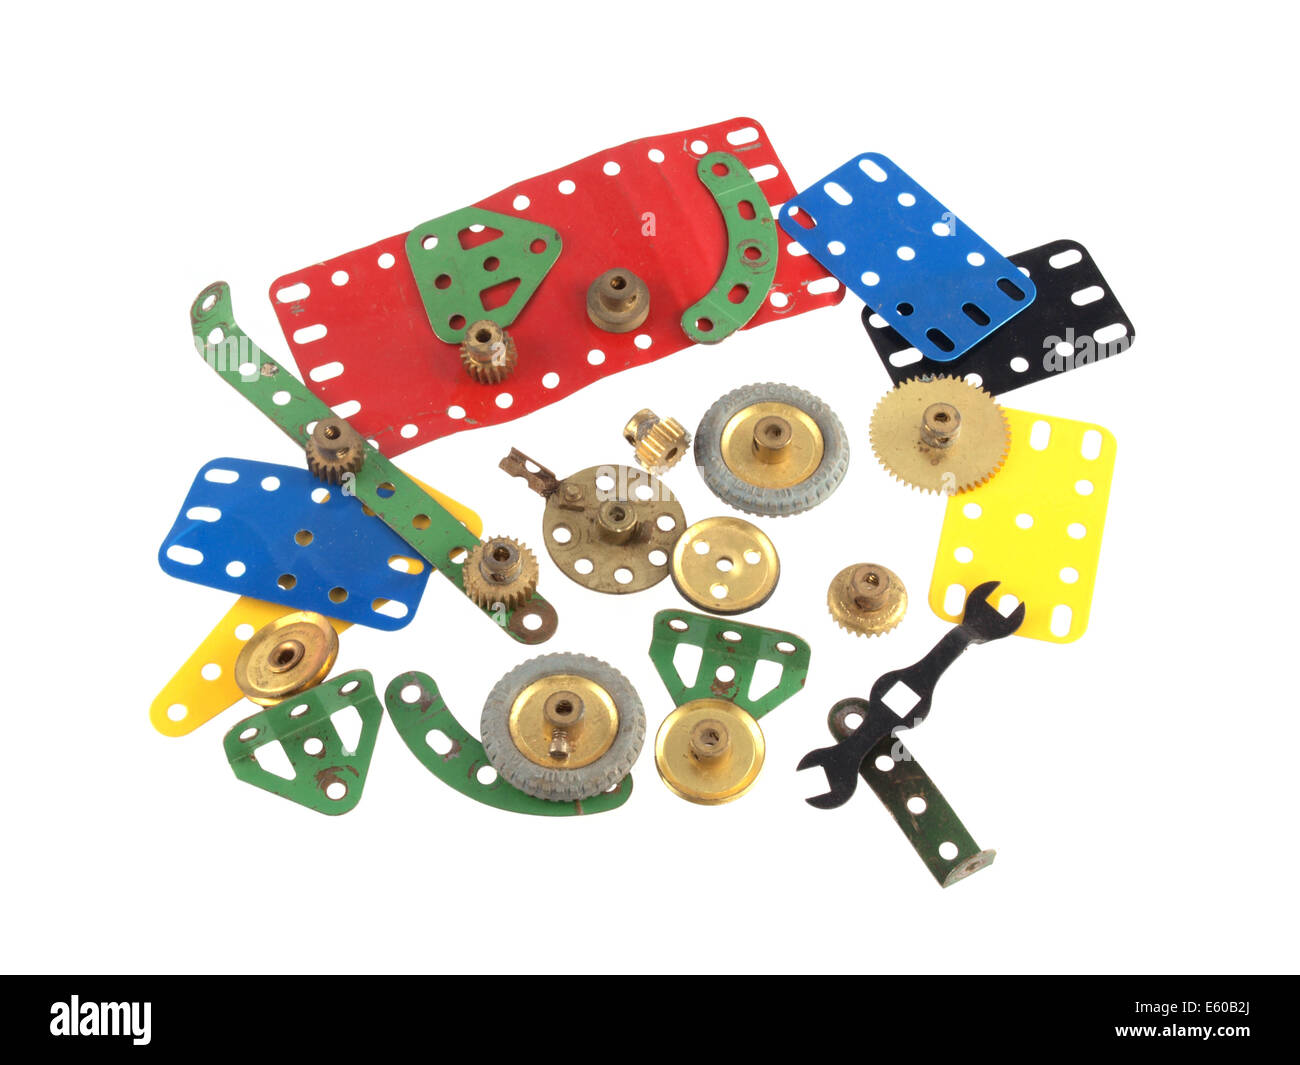 Close up photo of components used to construct model toys. - Stock Image